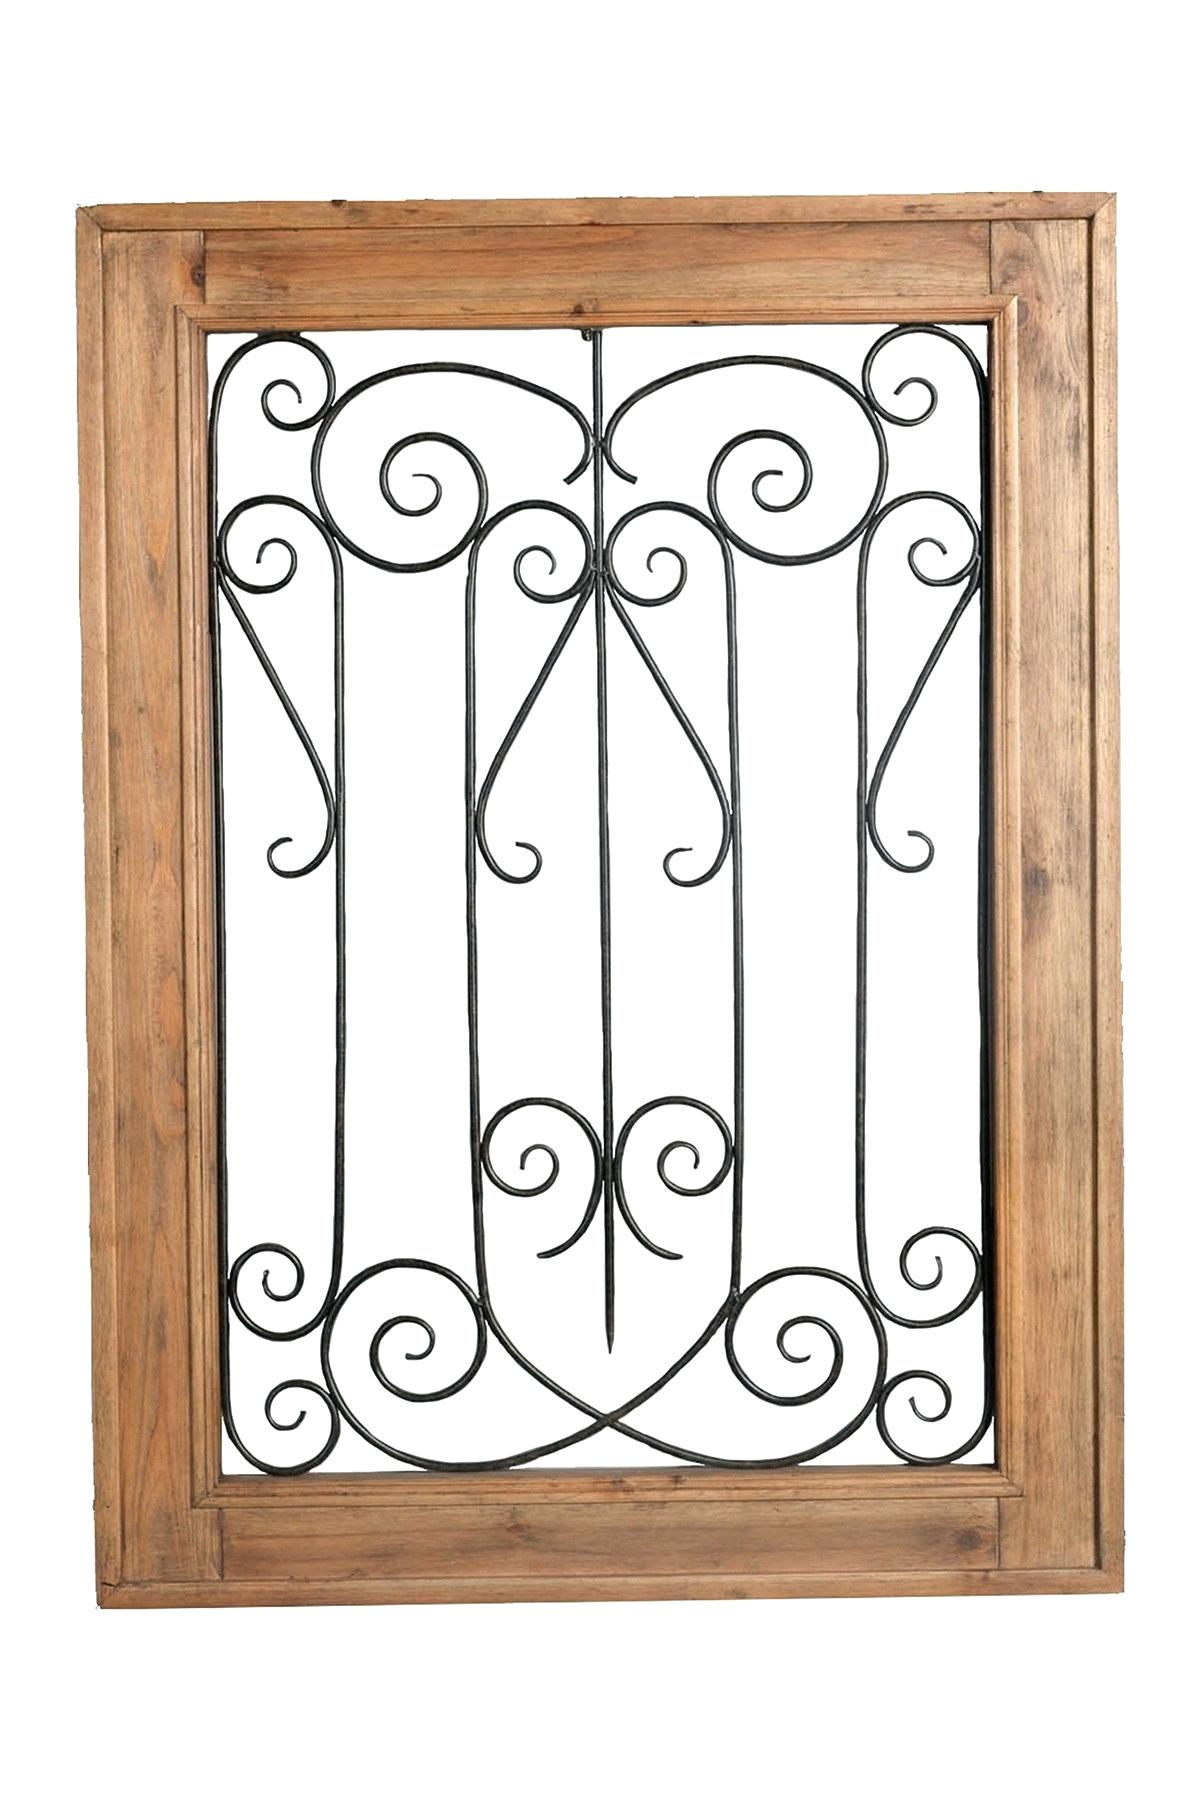 Ornate Scroll Wall Decor Pertaining To Widely Used Metal Scroll Wall Decor – Oknews (View 11 of 20)